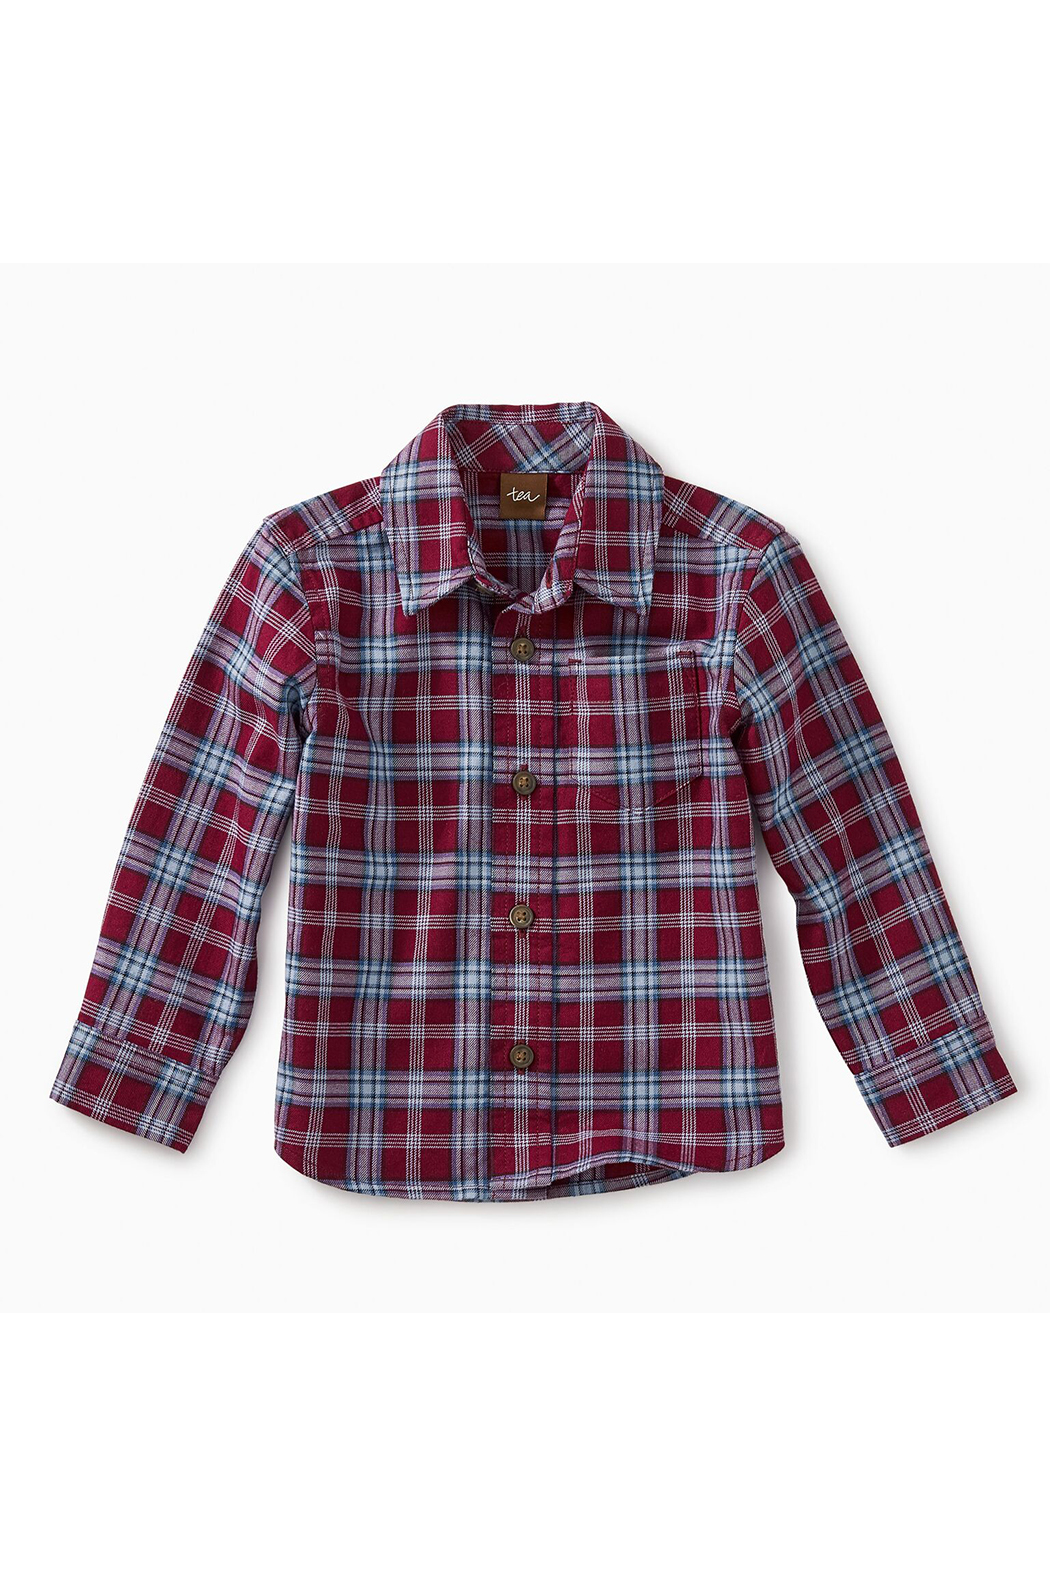 Tea Collection Lakeshore Plaid Baby Button Shirt - Main Image